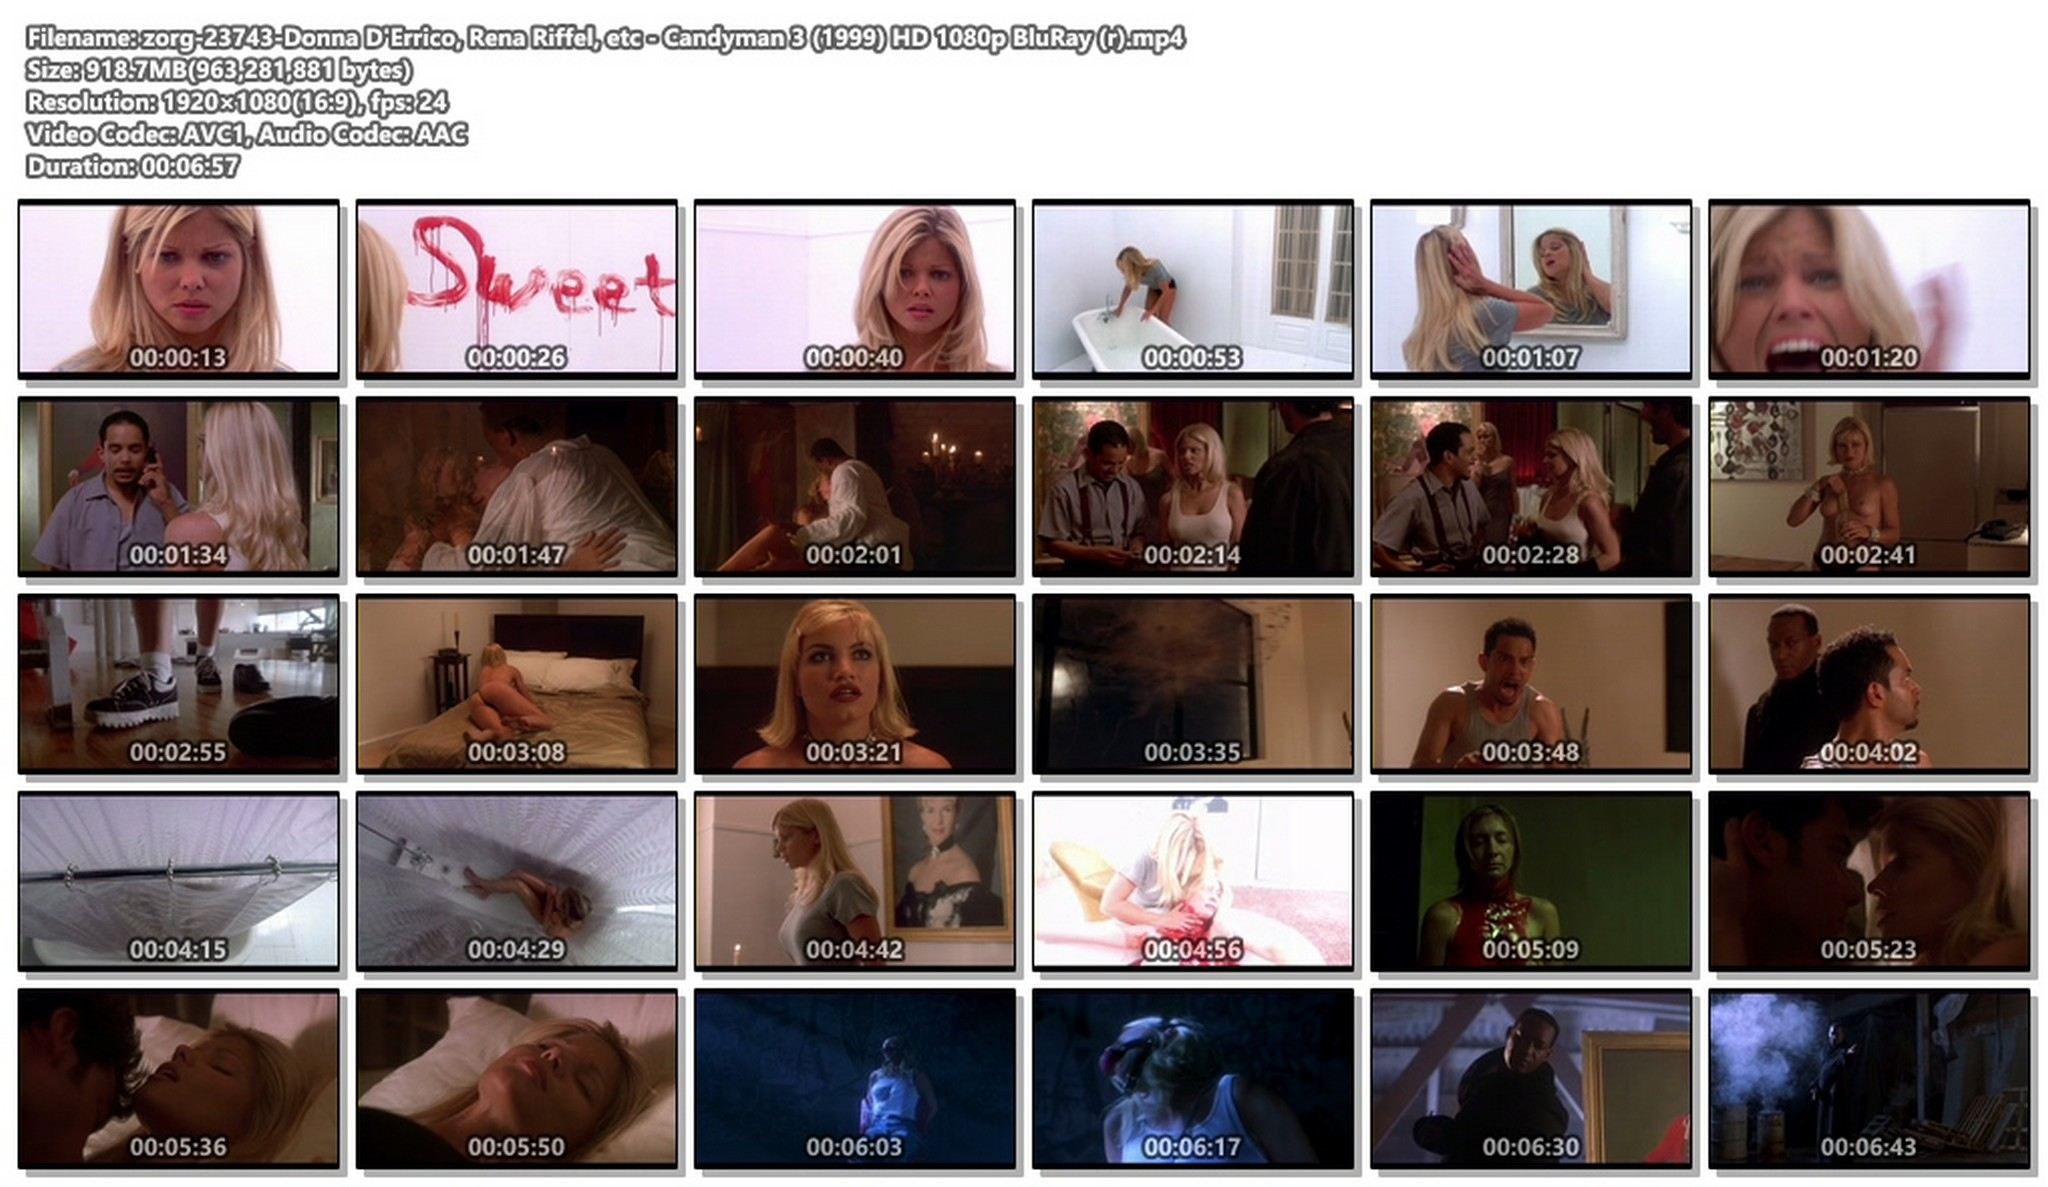 Donna D'Errico hot Rena Riffel and others nude - Candyman 3 (1999) HD 1080p BluRay (r) (1)